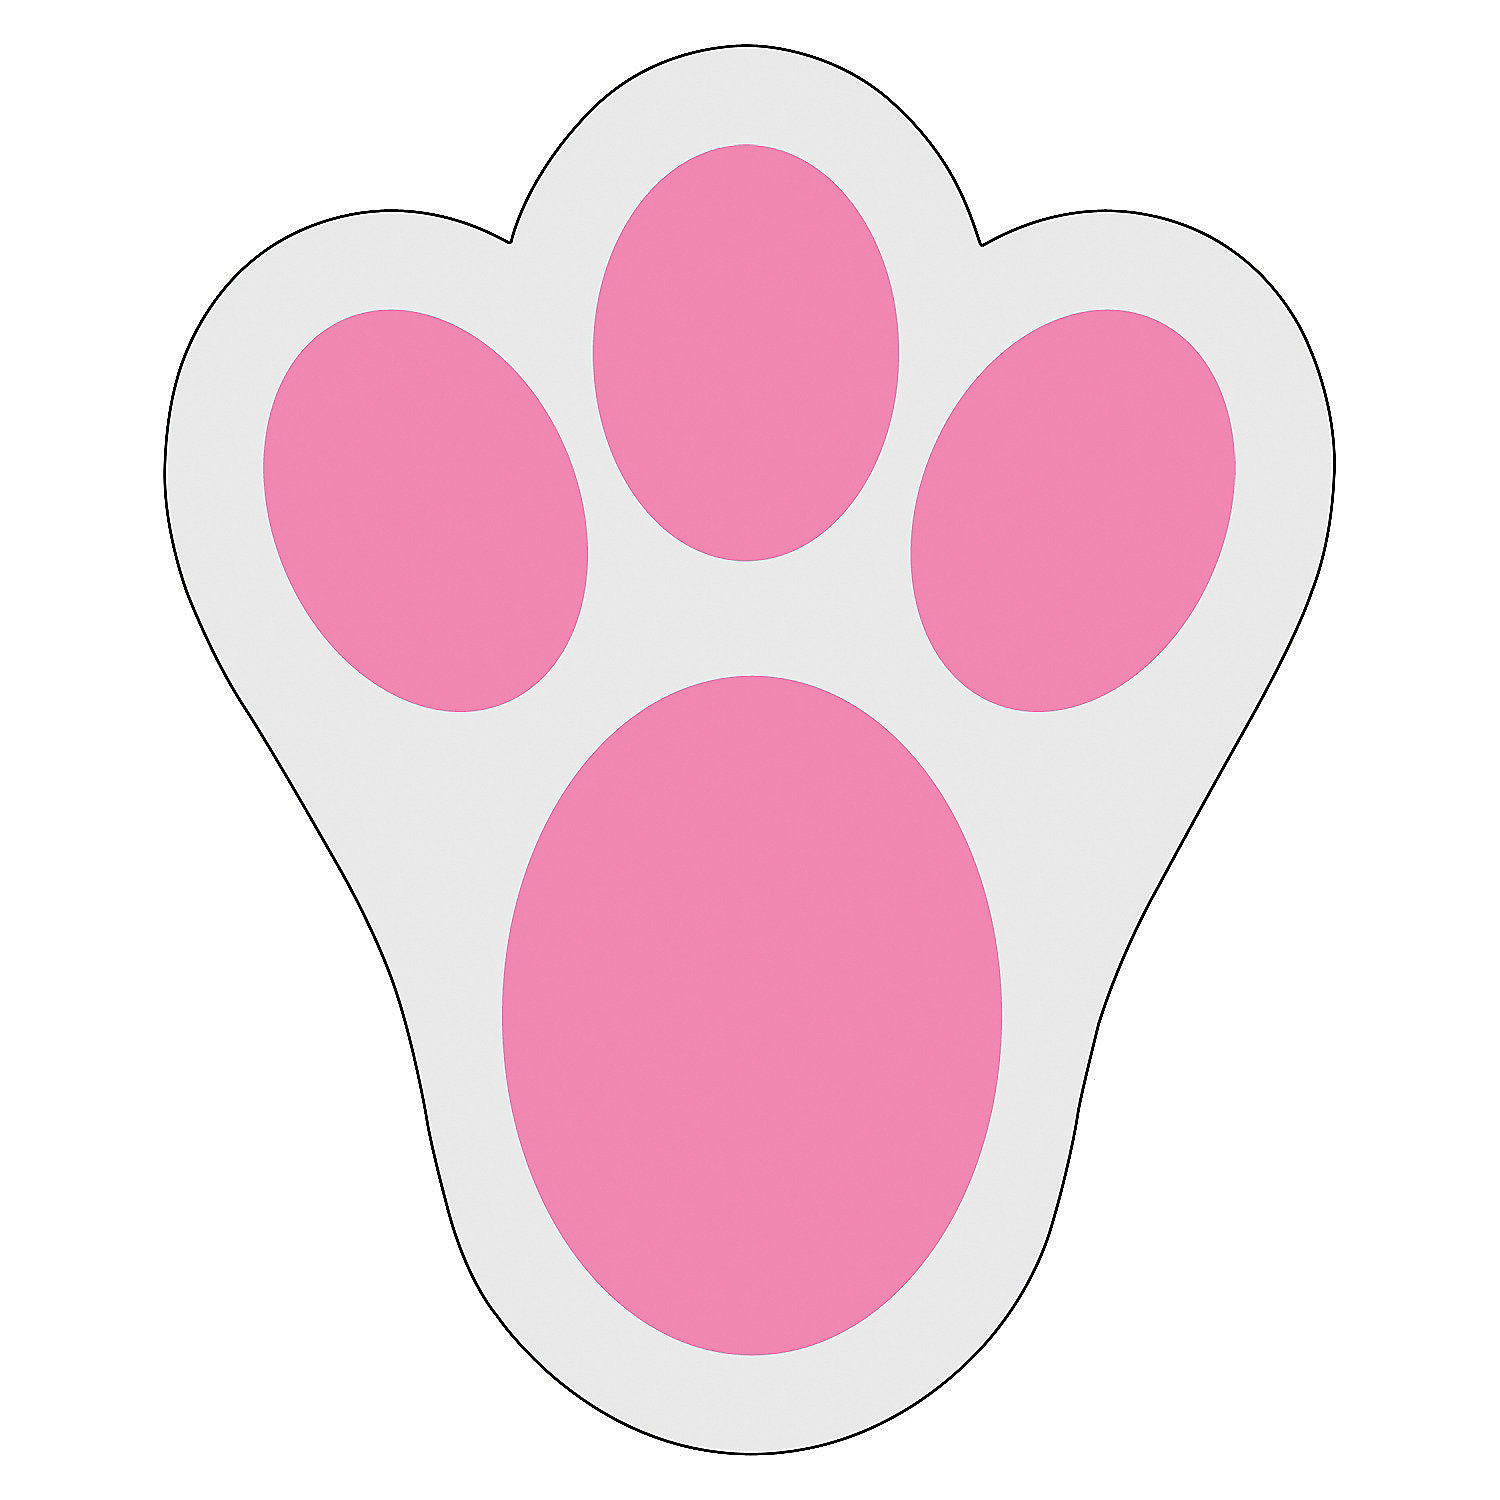 Footprint clipart floor Bunny with feet автор Clipart